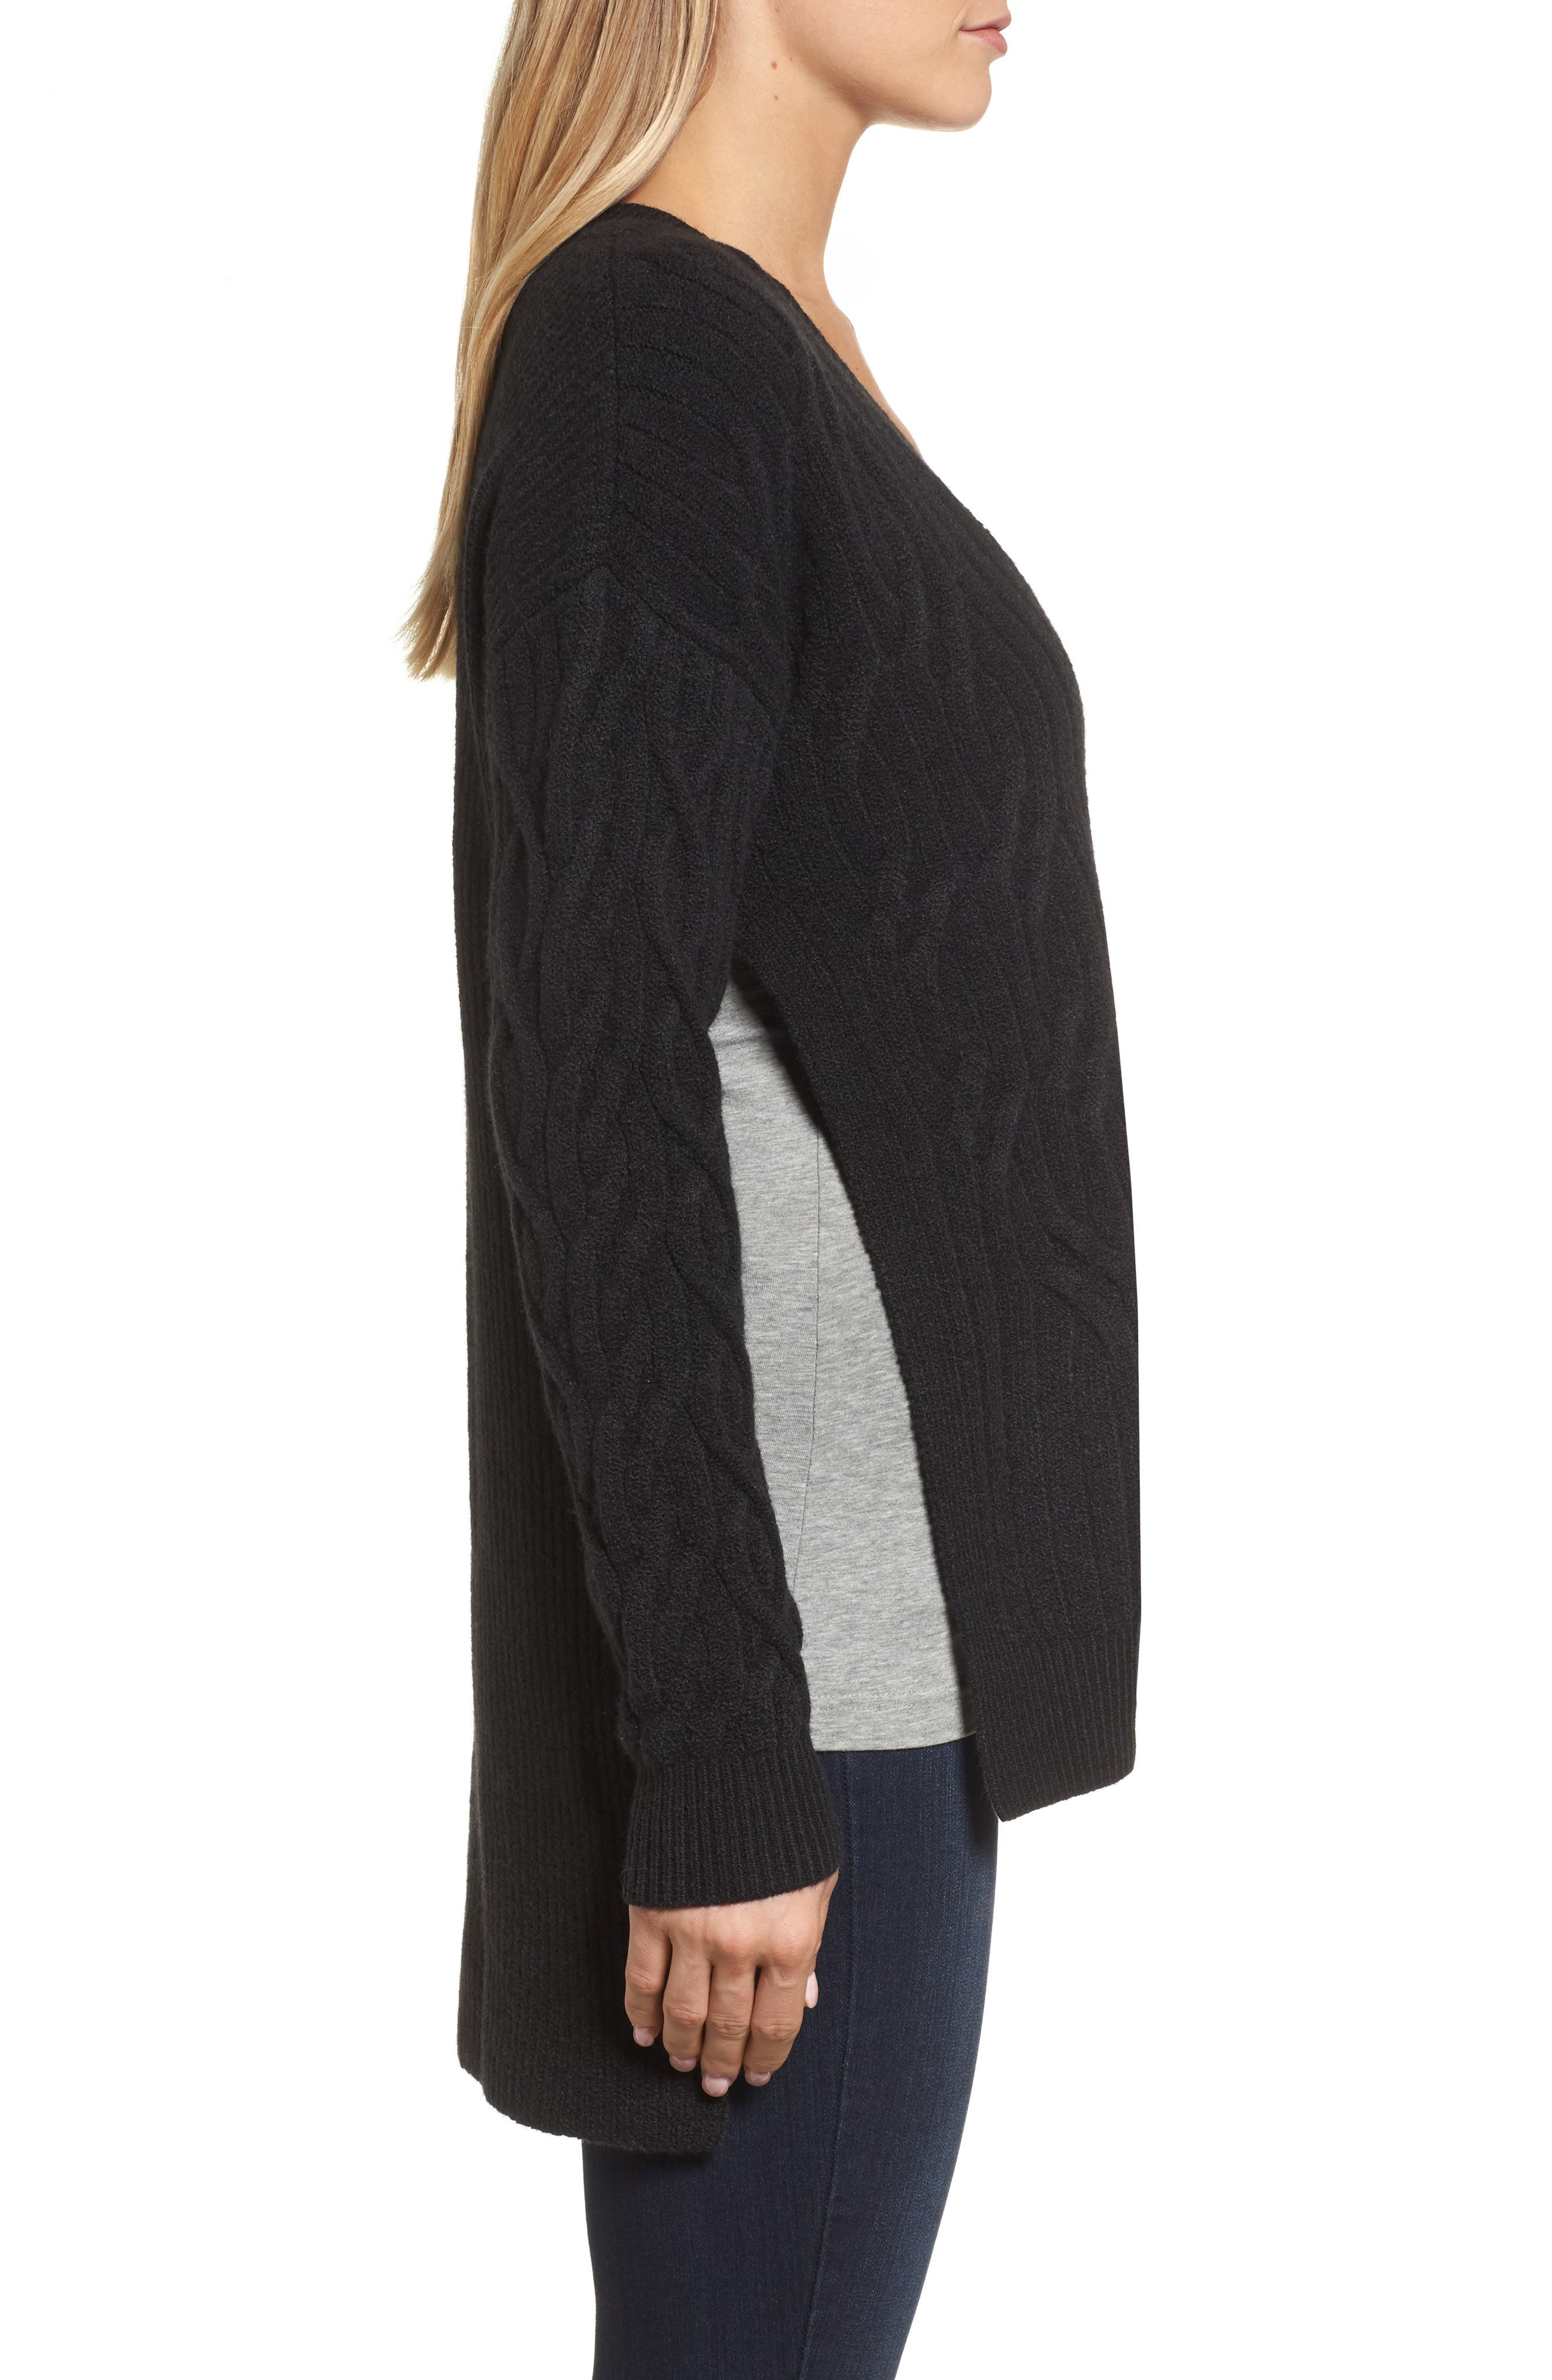 Irregular Cable Knit Sweater,                             Alternate thumbnail 3, color,                             Black